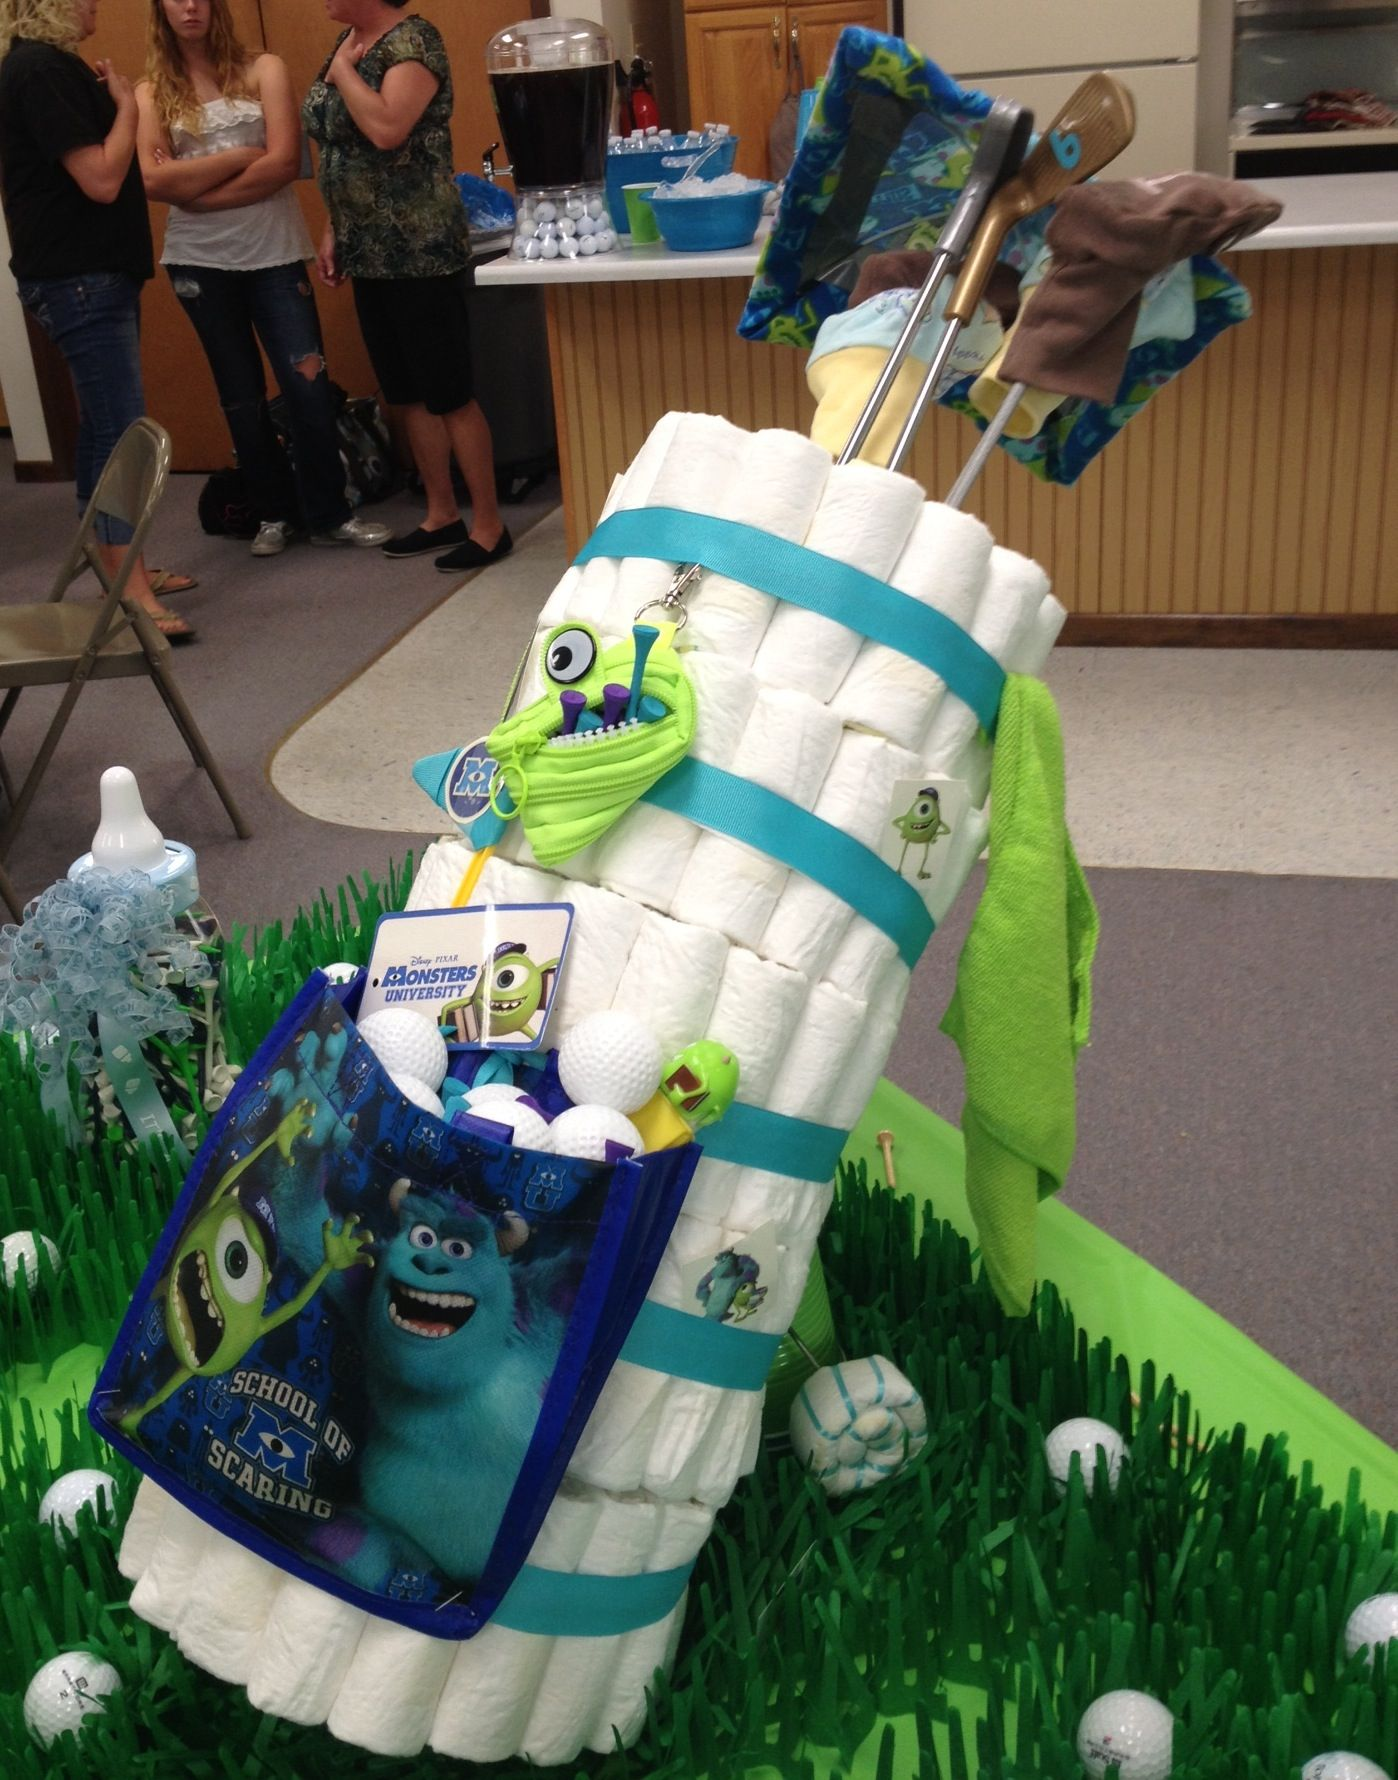 Diaper golf bag to match shower theme Decked out in Monsters Inc